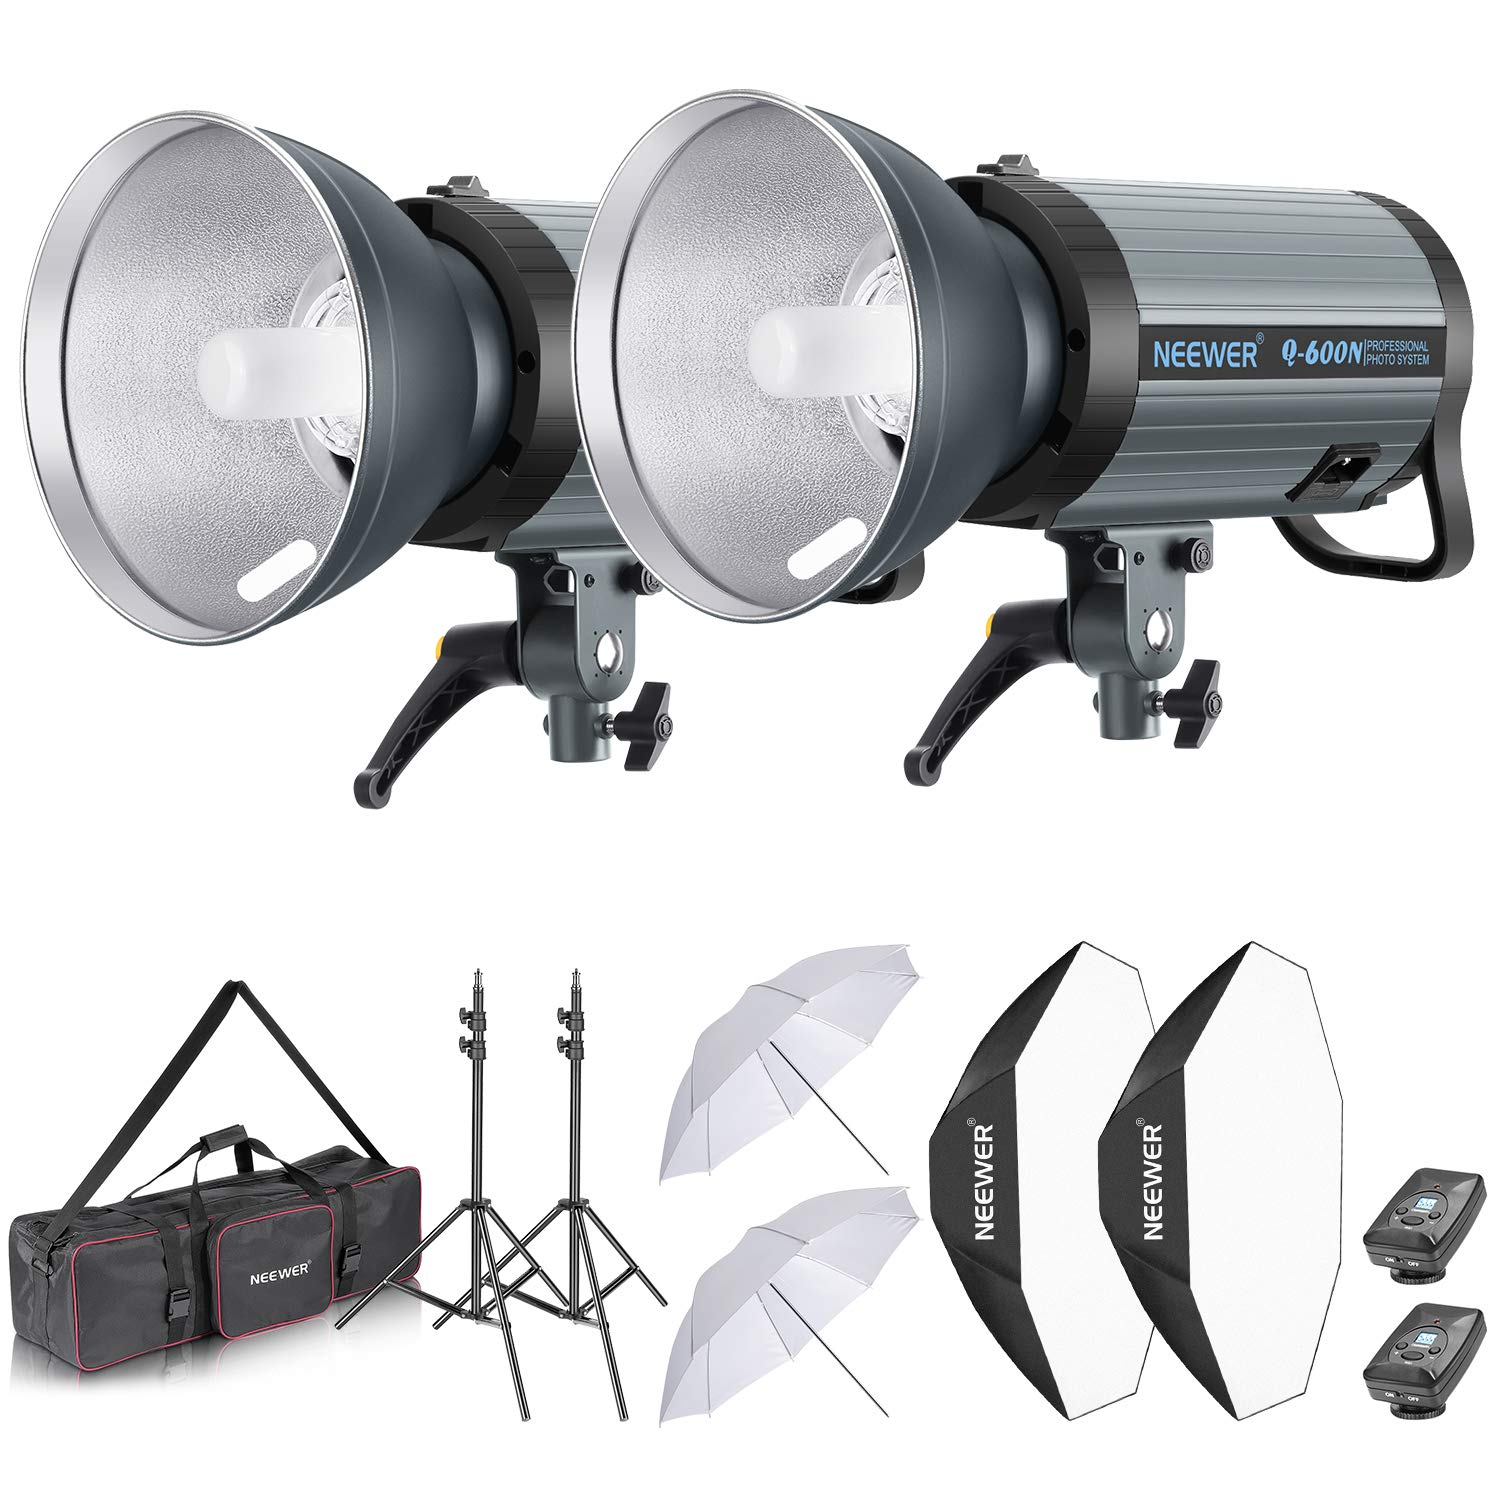 Neewer 1200W Studio Strobe Flash Photography Lighting Kit:(2) 600W Monolight with 2.4G Wireless Trigger,(2) Lampshade,(2) Softbox,(2) Umbrella,(2) Light Stand,(1) Bag for Shooting Bowens Mount(Q600N) by Neewer